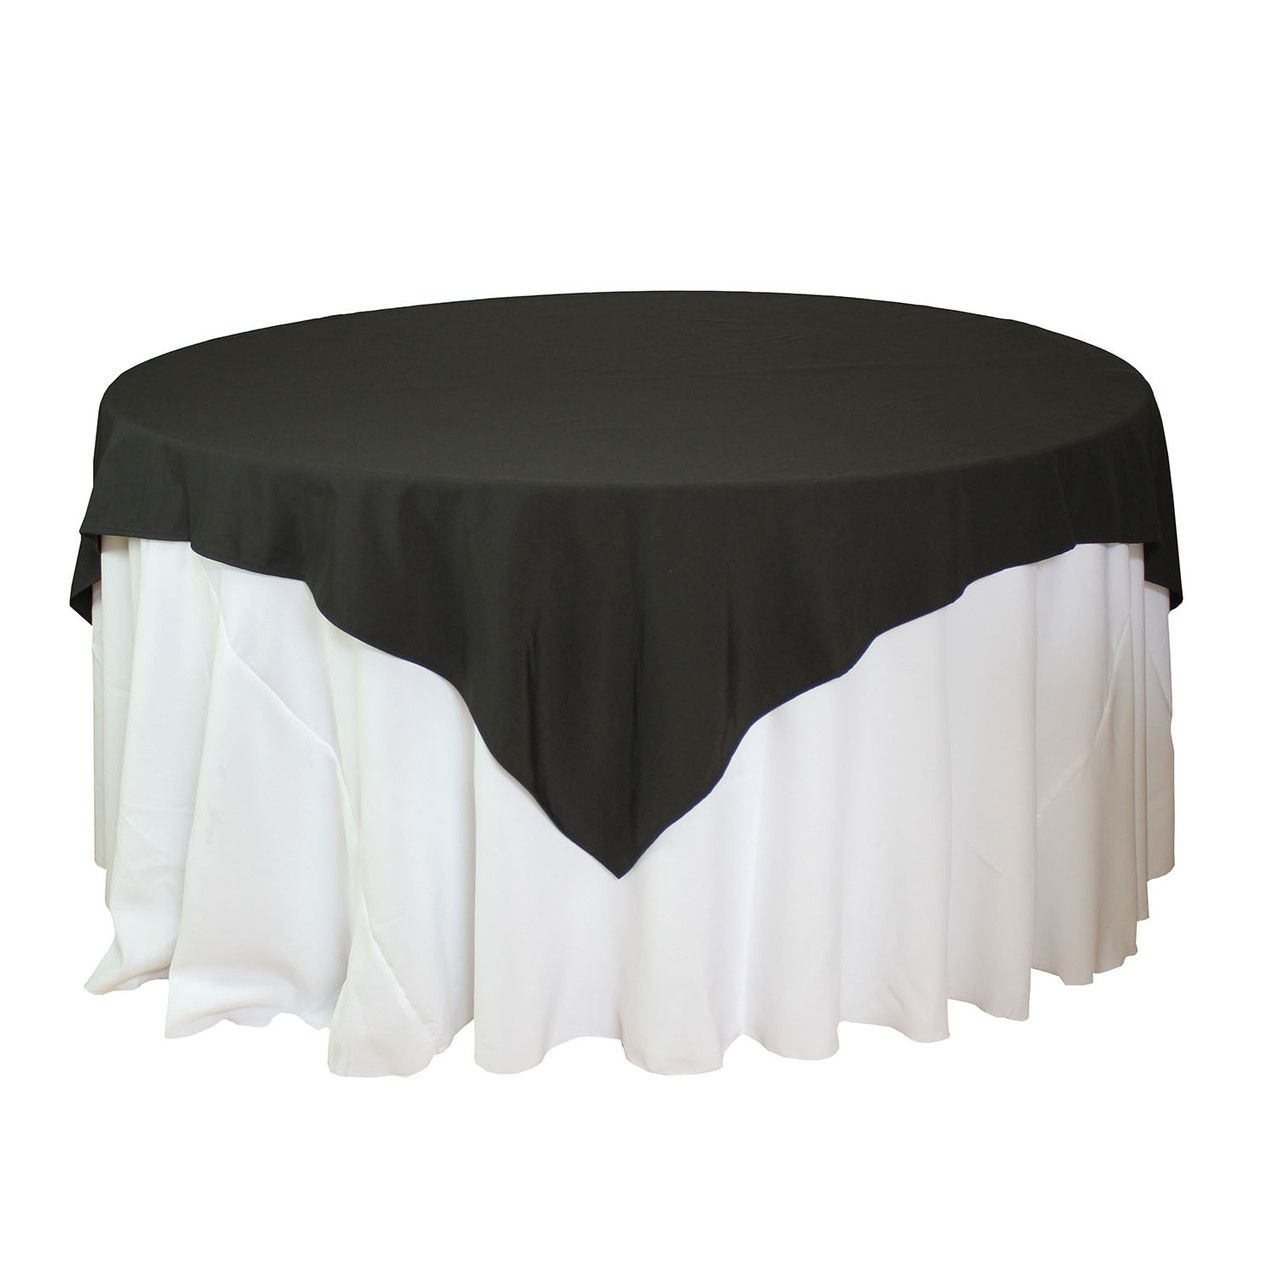 Round Table With Tablecloth.85 X 85 Inch Black Square Tablecloths Black Table Overlays